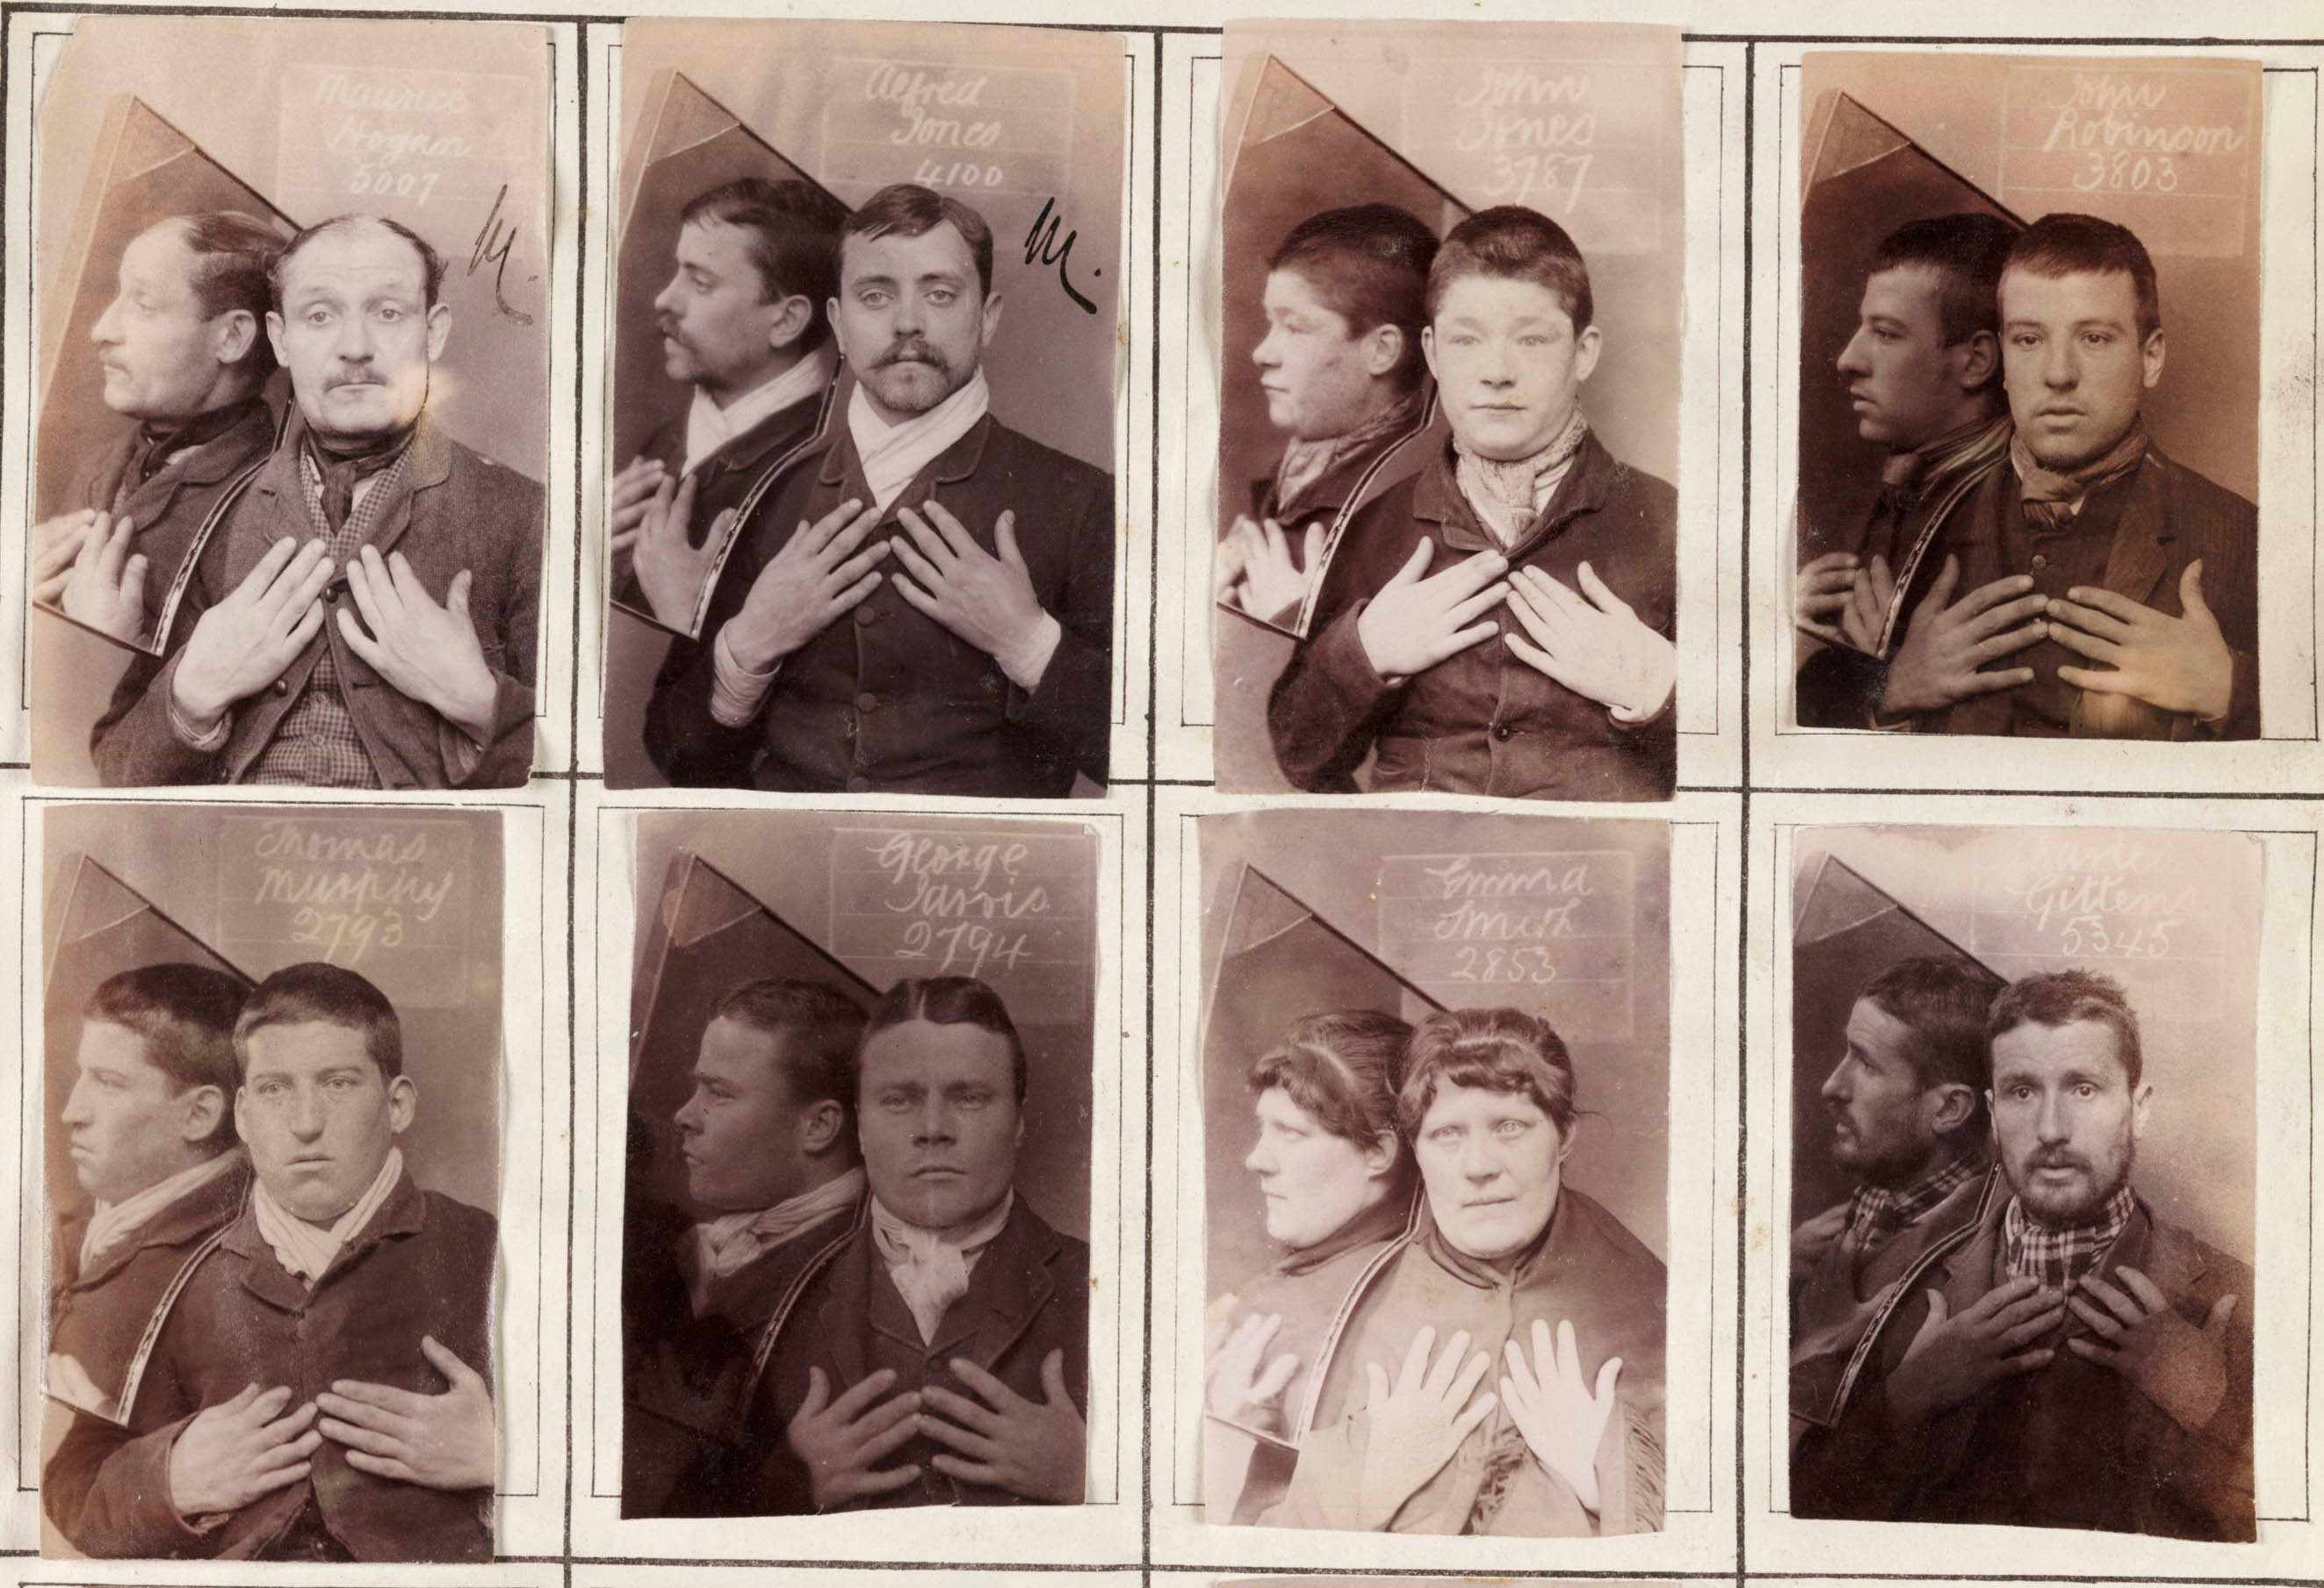 Rogues' gallery: Images of criminals incarcerated in prisons including Wormwood Scrubs and Newcastle City Gaol, in the late 19th and early 20th centuries. Their crimes included stealing clothes, money, boots, and leather. Recent research into Victorian mugshot books – and increasing digital access to court and prison records – offers a different picture of Victorian criminality to the one painted by writers such as Charles Dickens, argues Heather Shore. (Photo by SSPL/Getty Images)